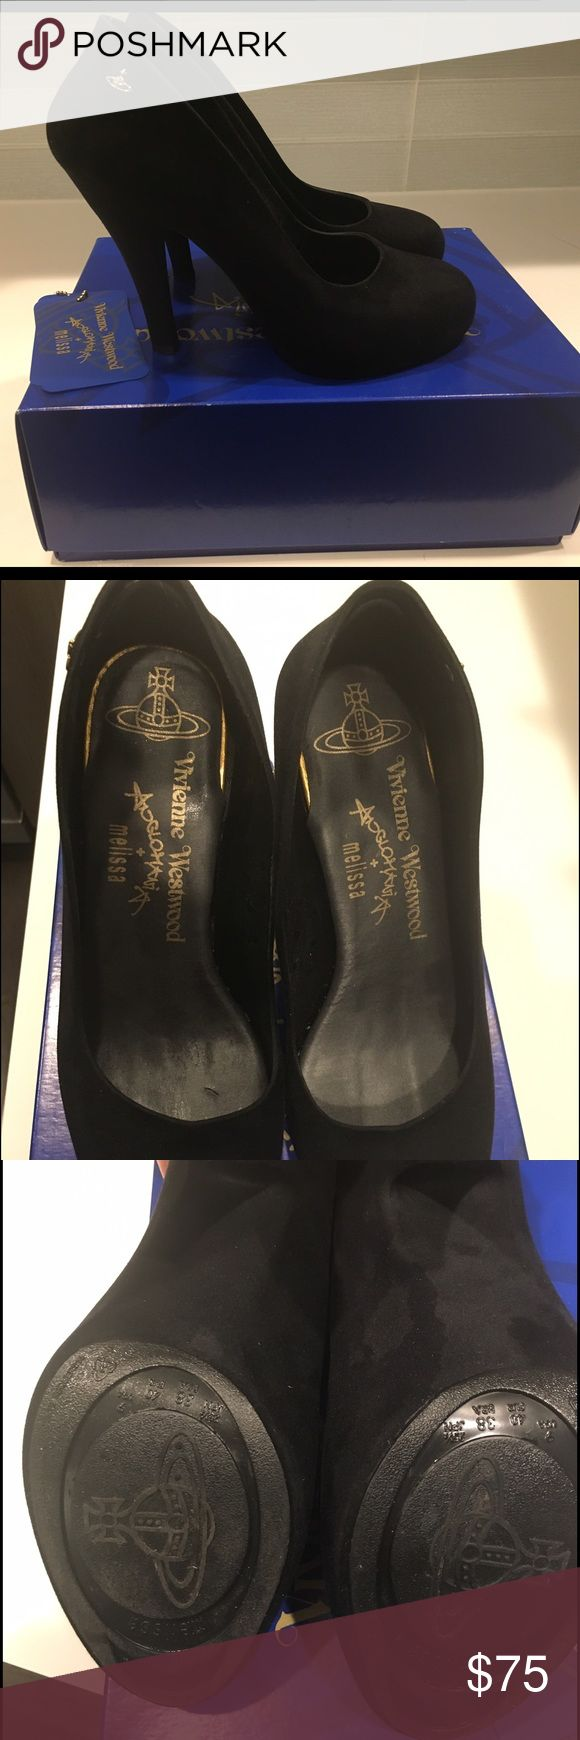 Vivienne Westwood Anglomania Melissa Classic black heels in Size 9. EU size 38. Worn twice, from a smoke free, pet free home.  Originally paid $175.00. Vivienne Westwood Shoes Heels